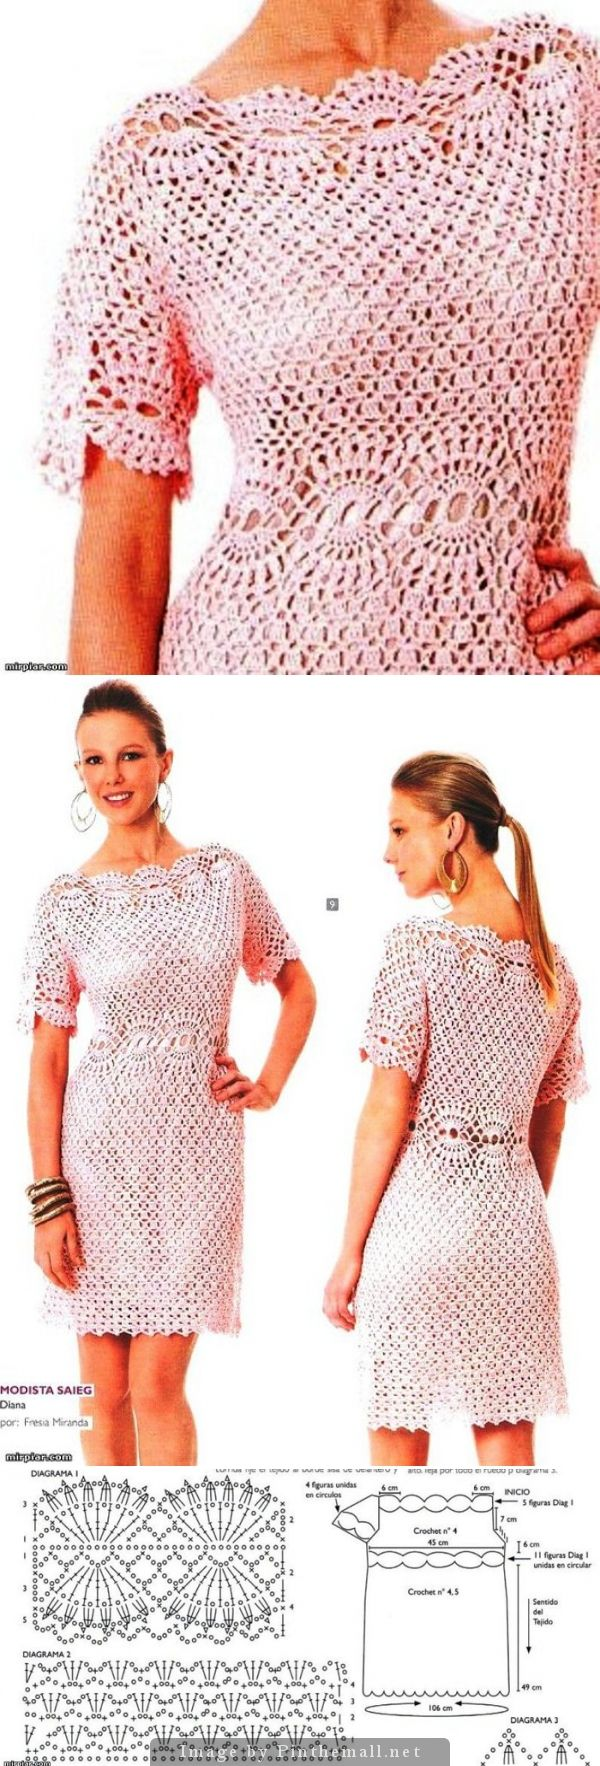 Crochet party dress PATTERN, crochet cocktail dress PDF pattern, detailed…